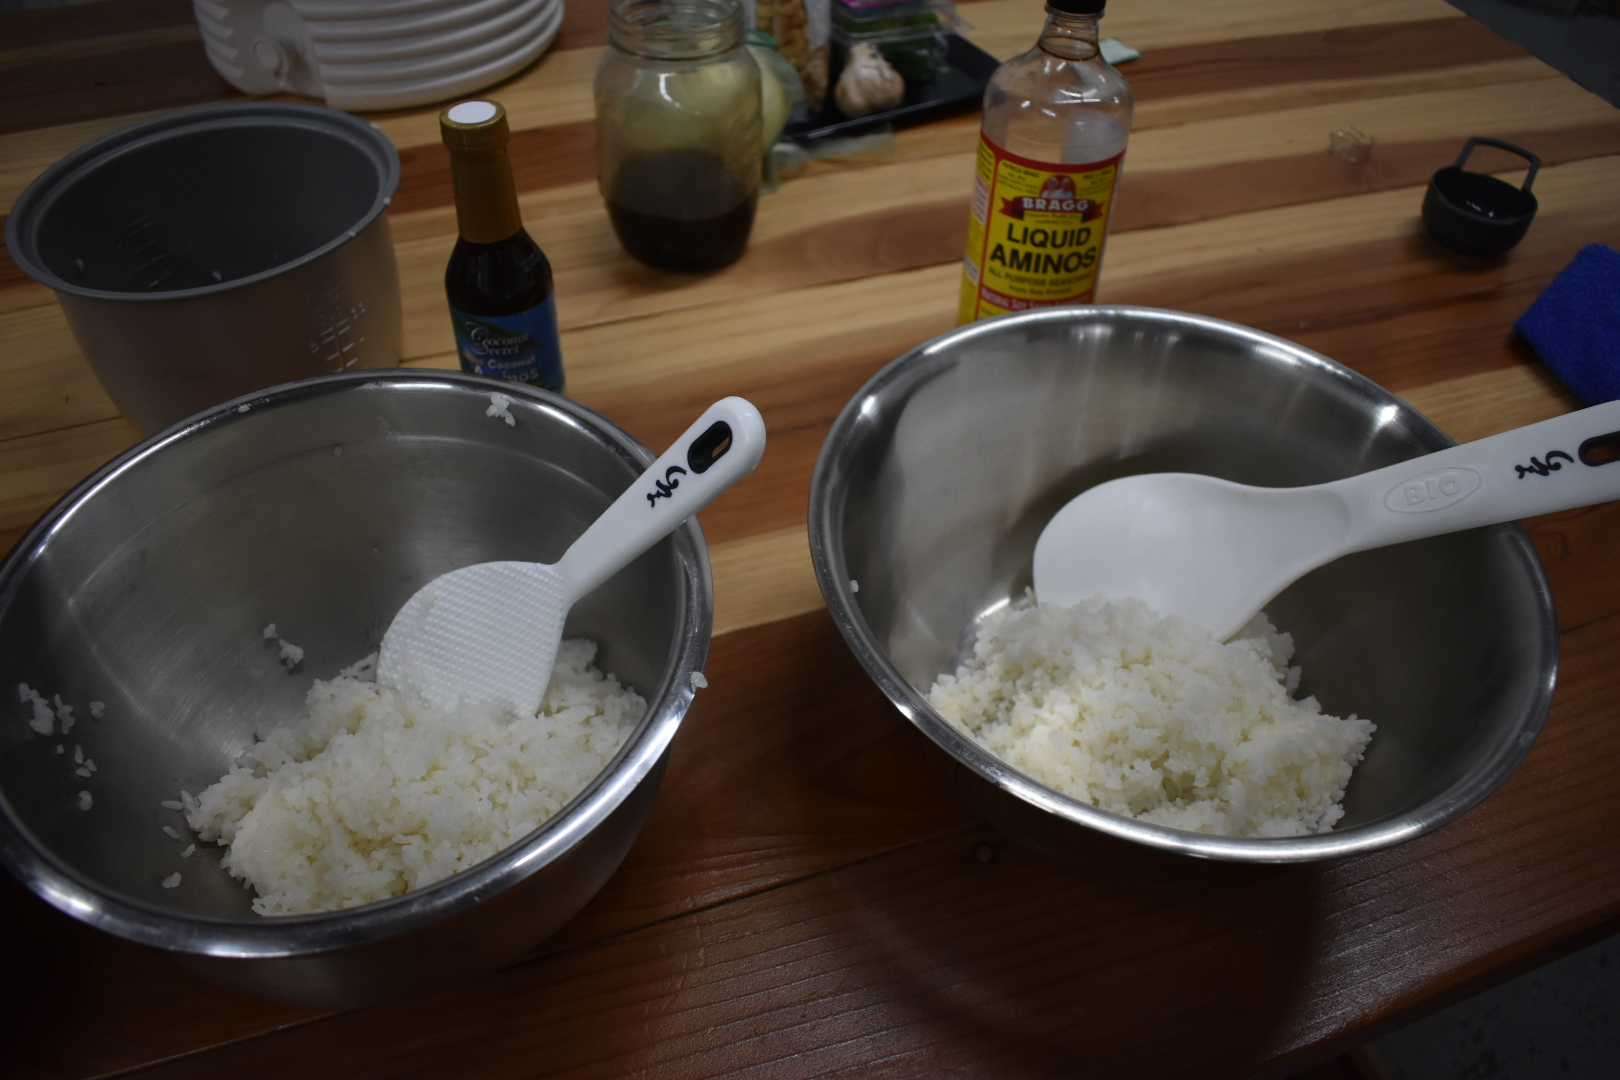 Transfer to Mixing Bowl